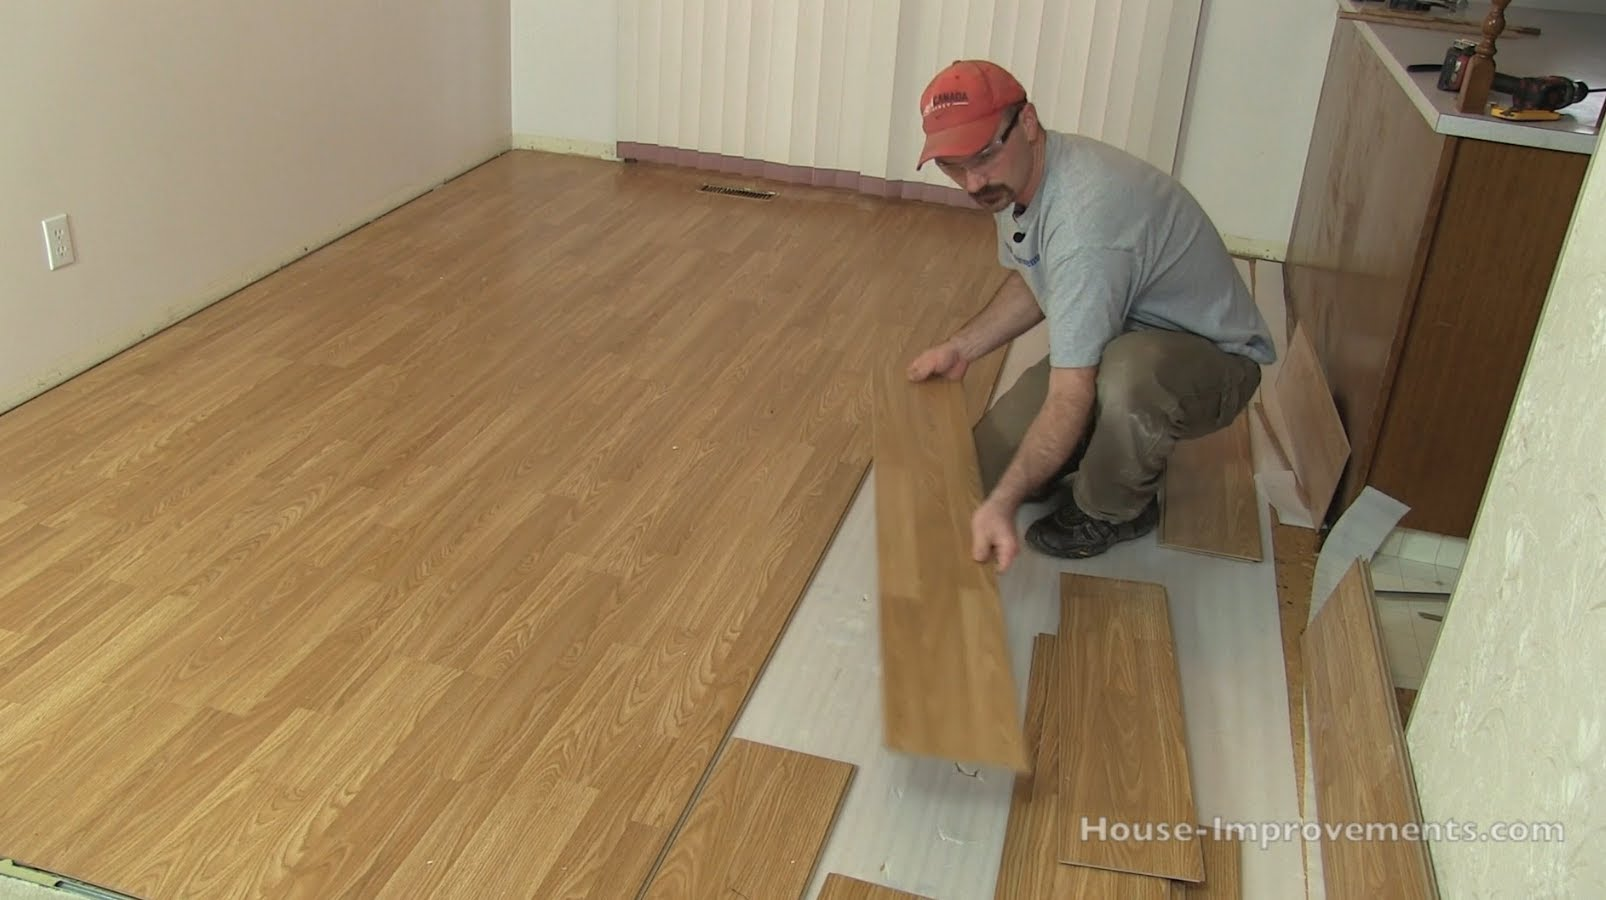 How to remove laminate flooring december 2019 toolversed - Laminate or wood flooring ...